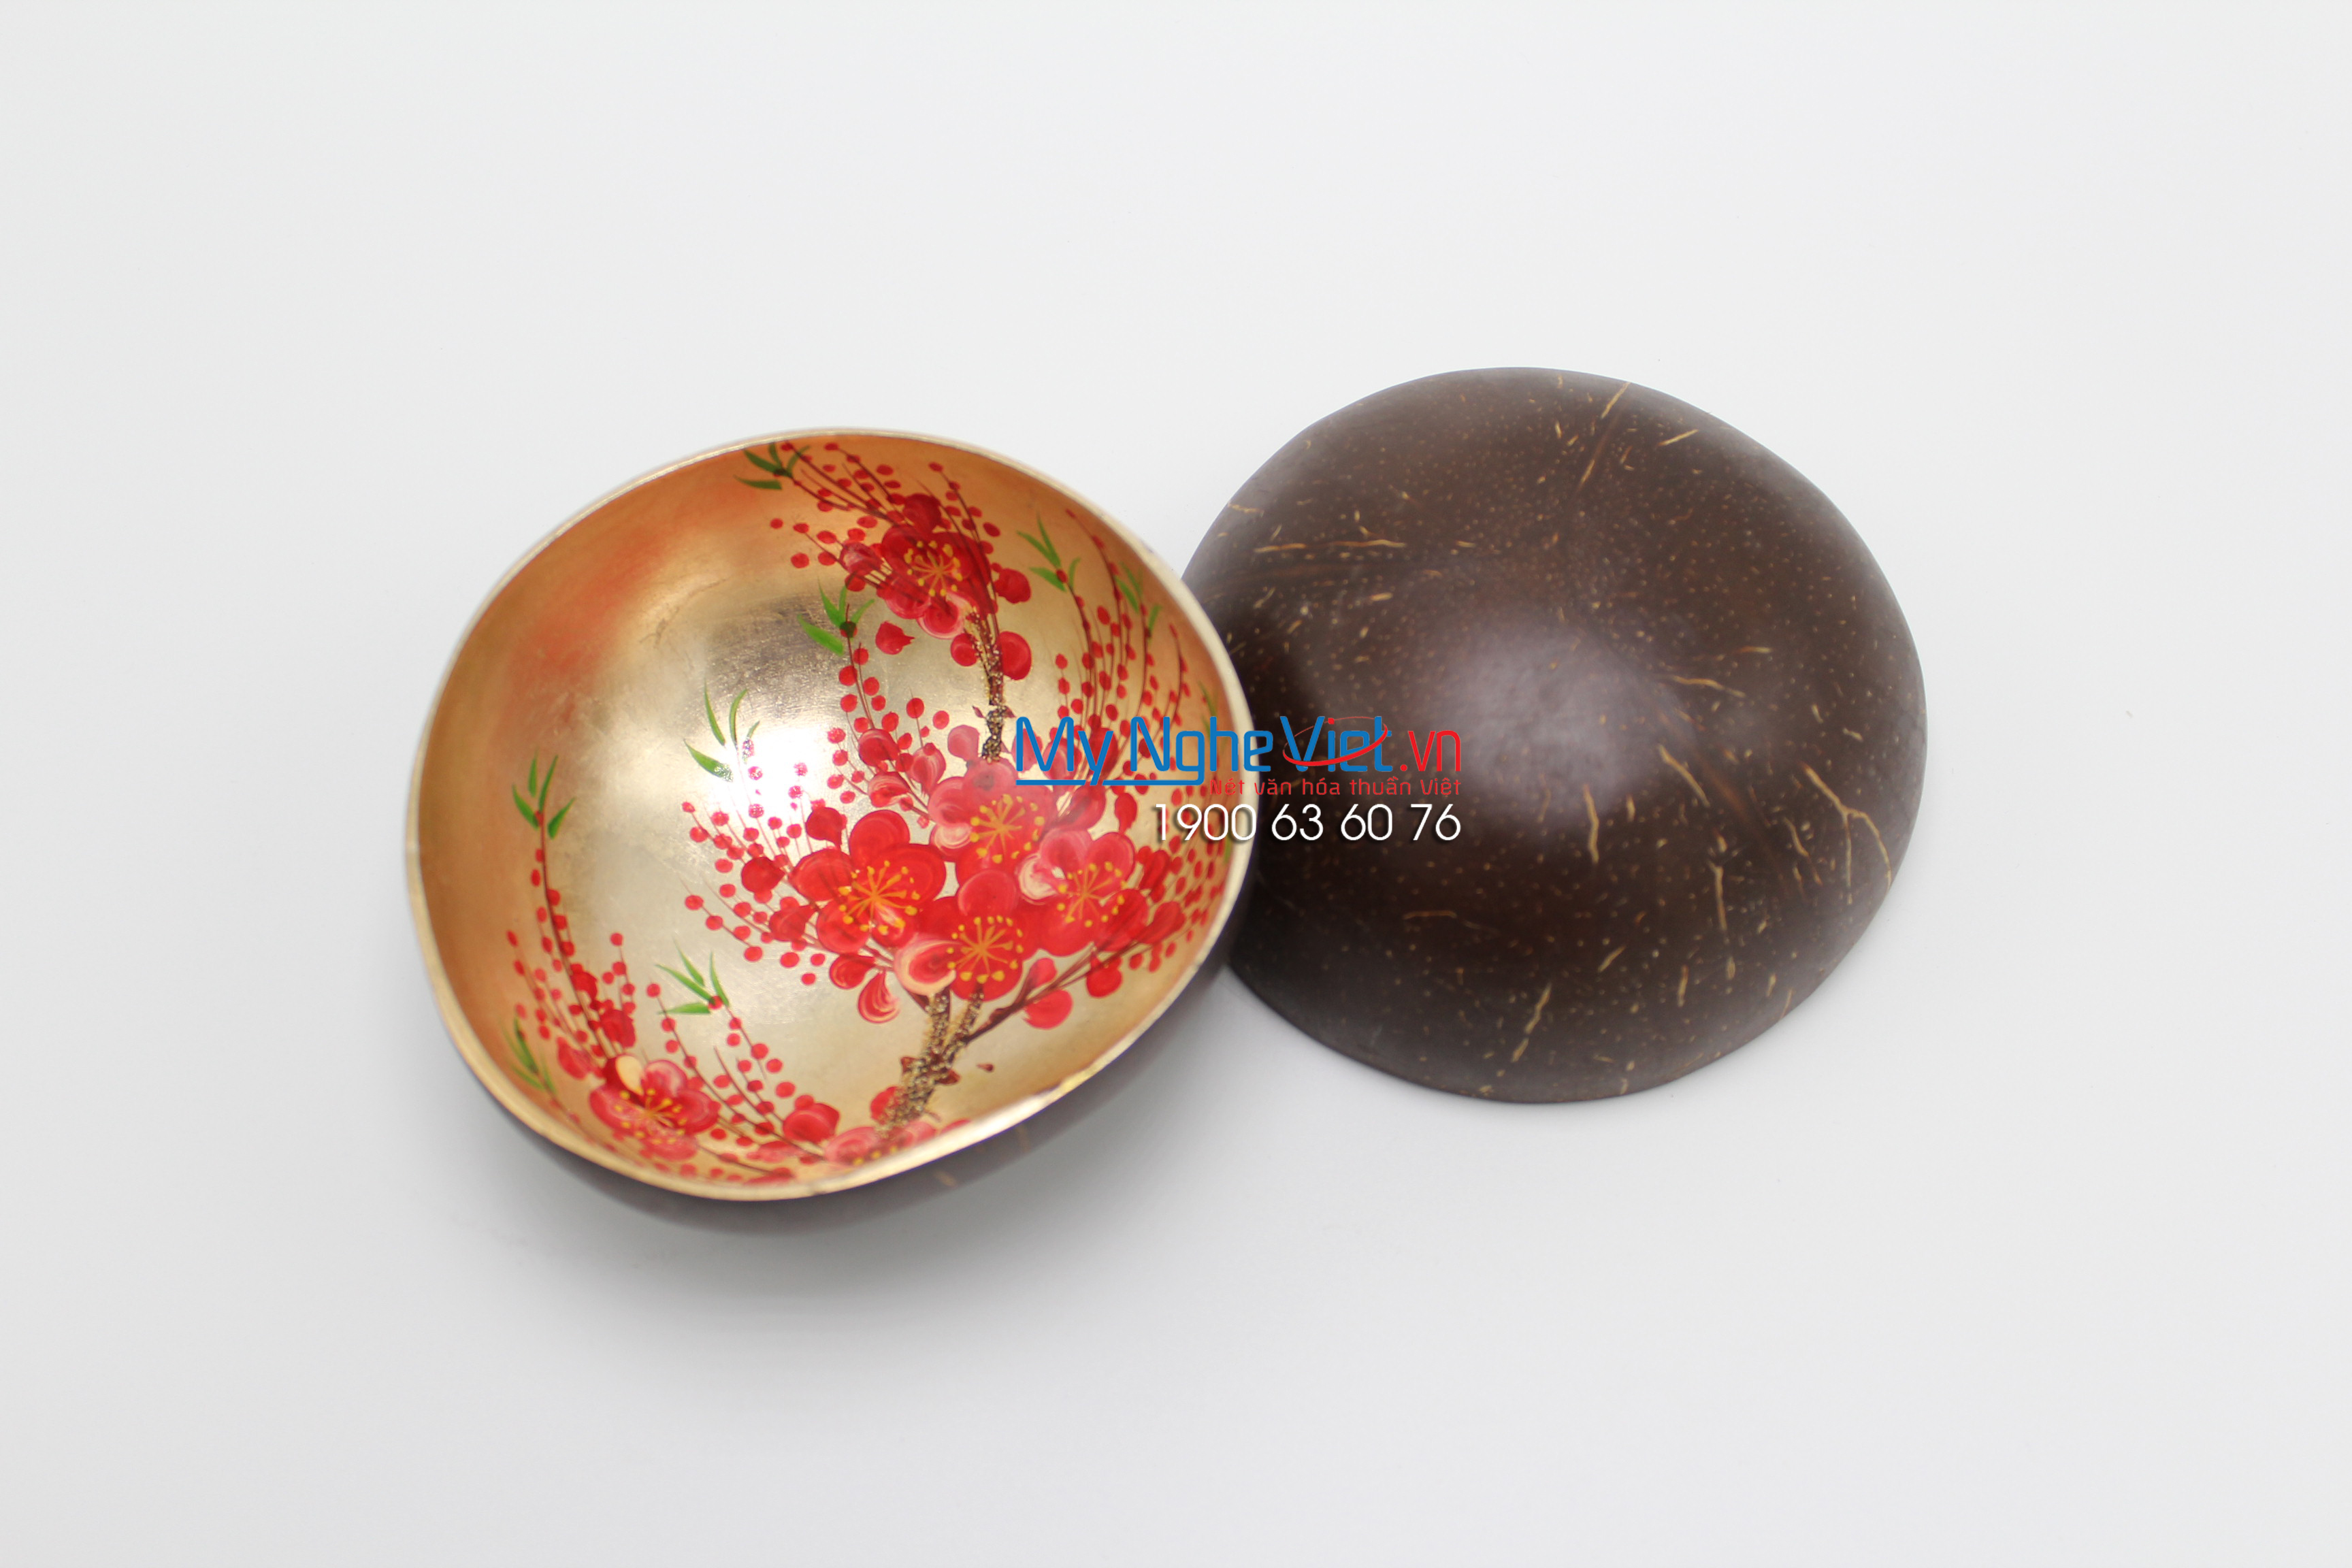 Peach Blossom Lacquer Painting Coconut Cup MNV-CDSM05